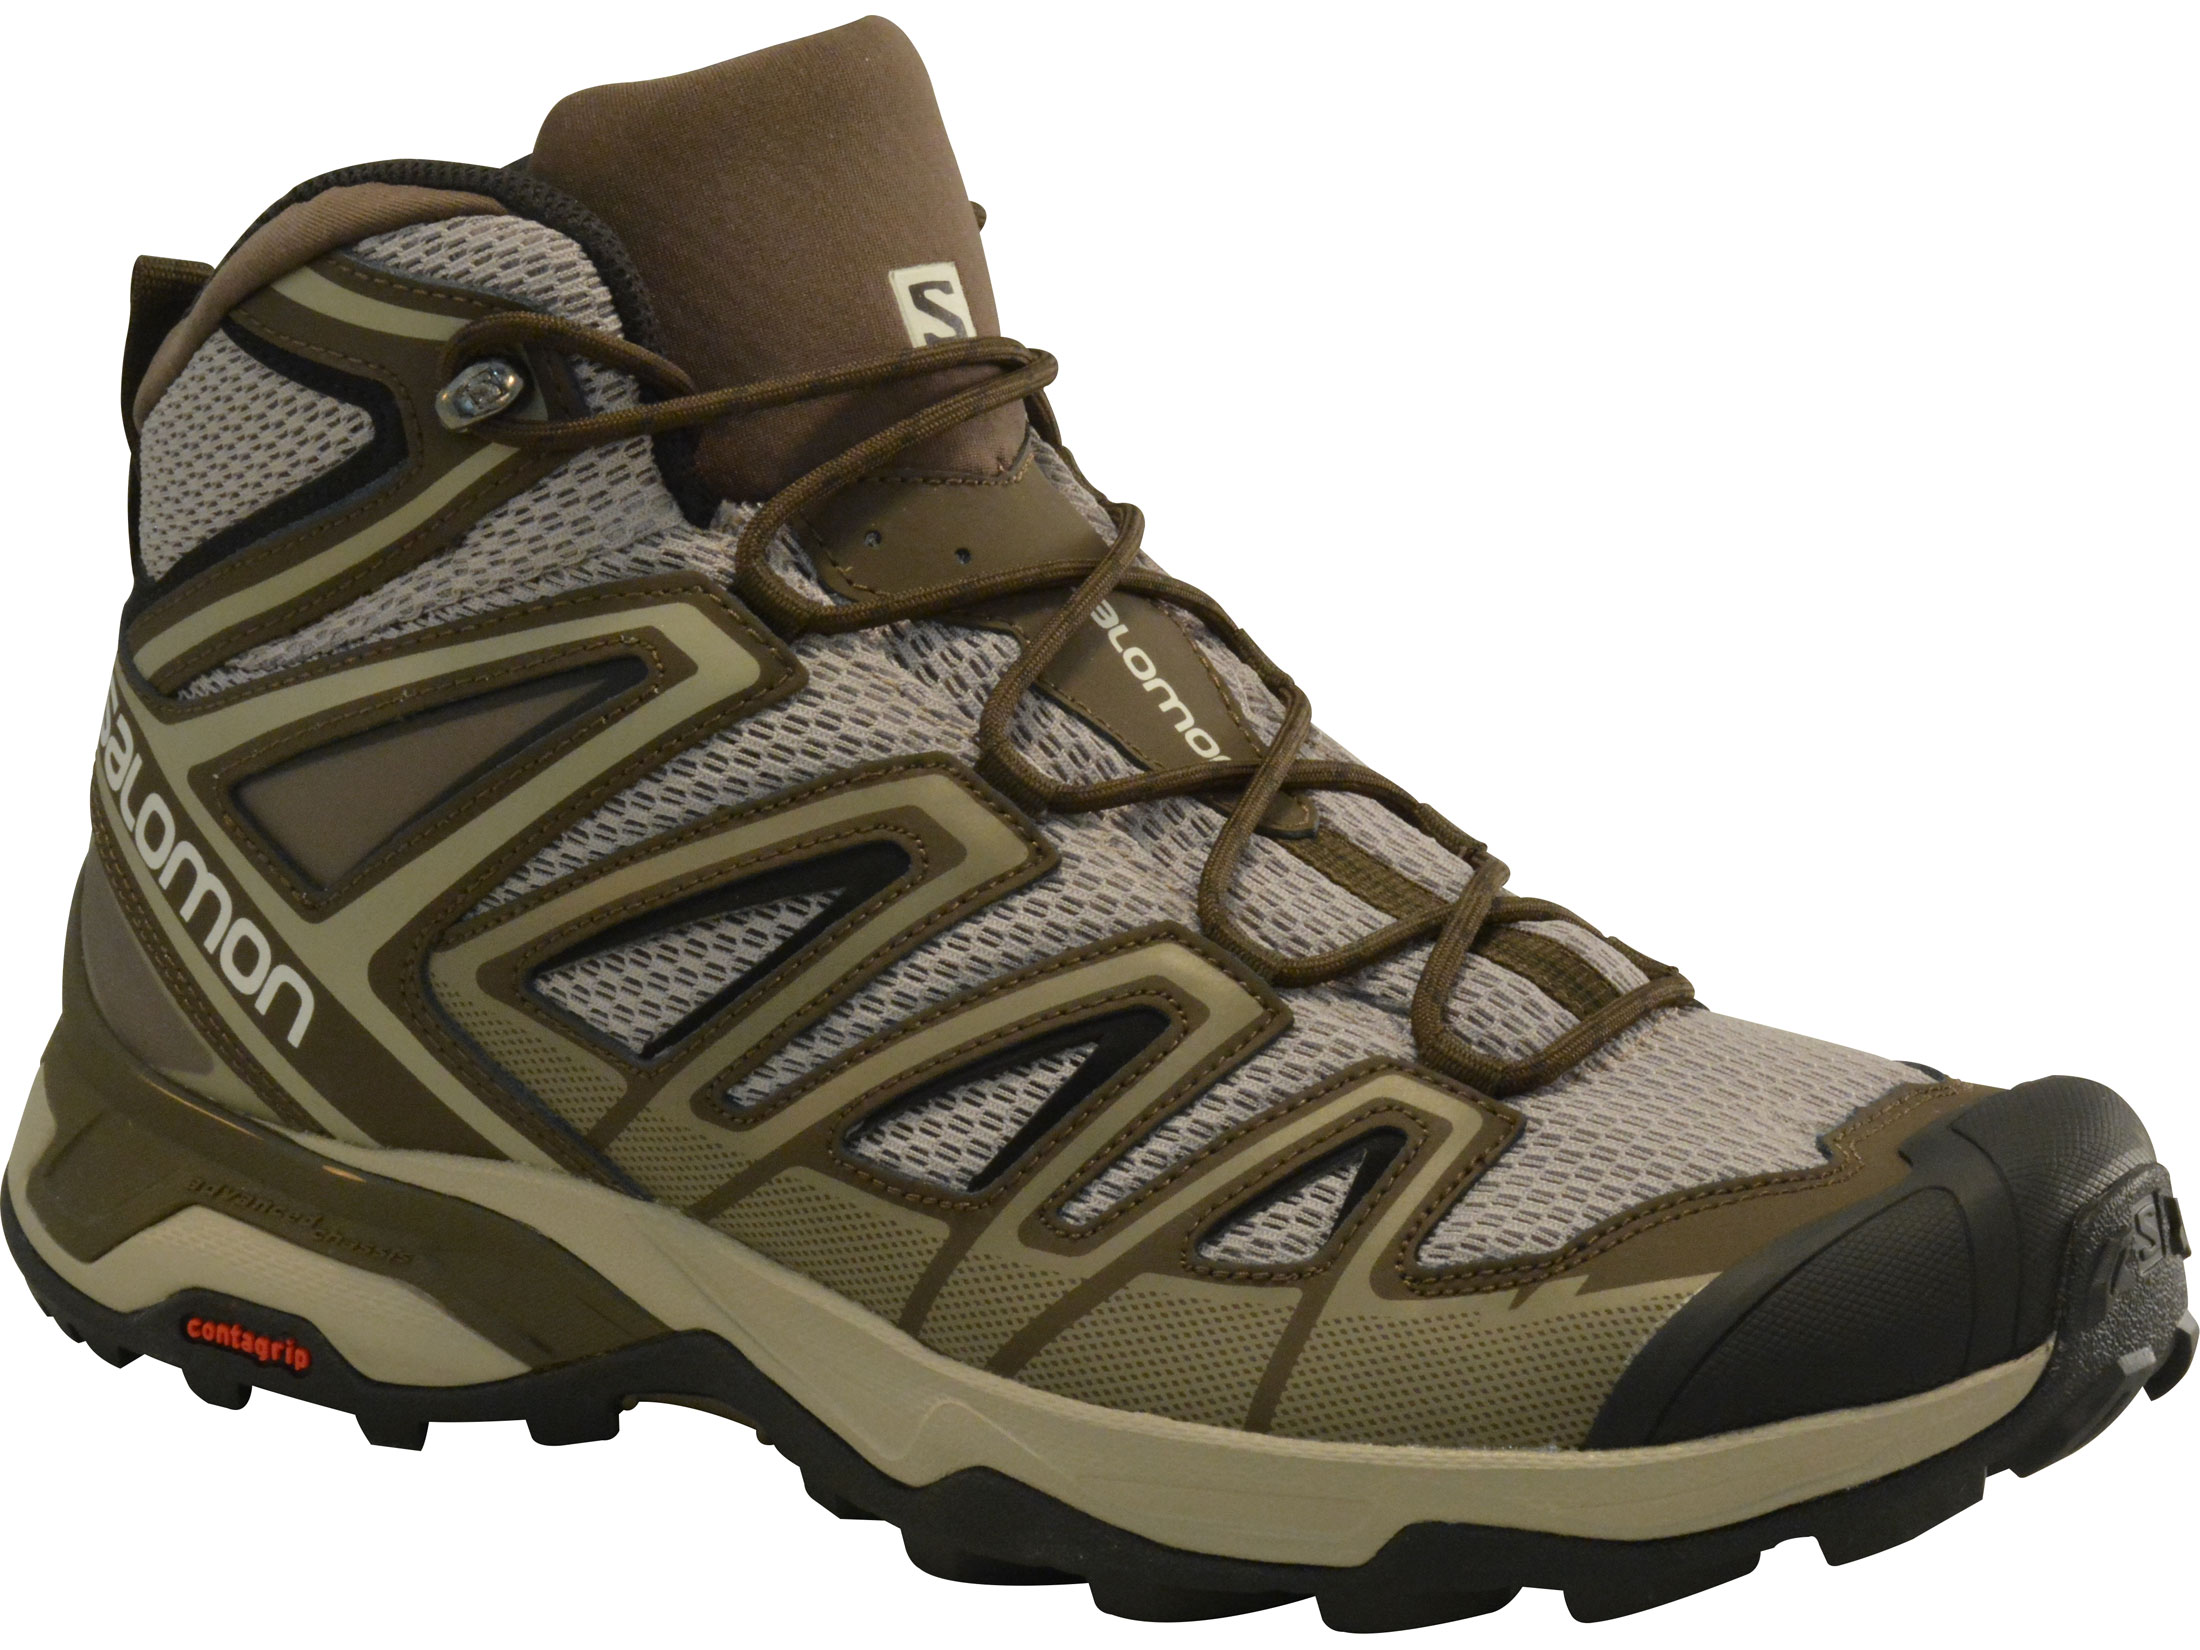 quality design 543c2 19bb3 Salomon X Ultra Mid 3 Aero 5 Hiking Boots Leather/Synthetic Vintage